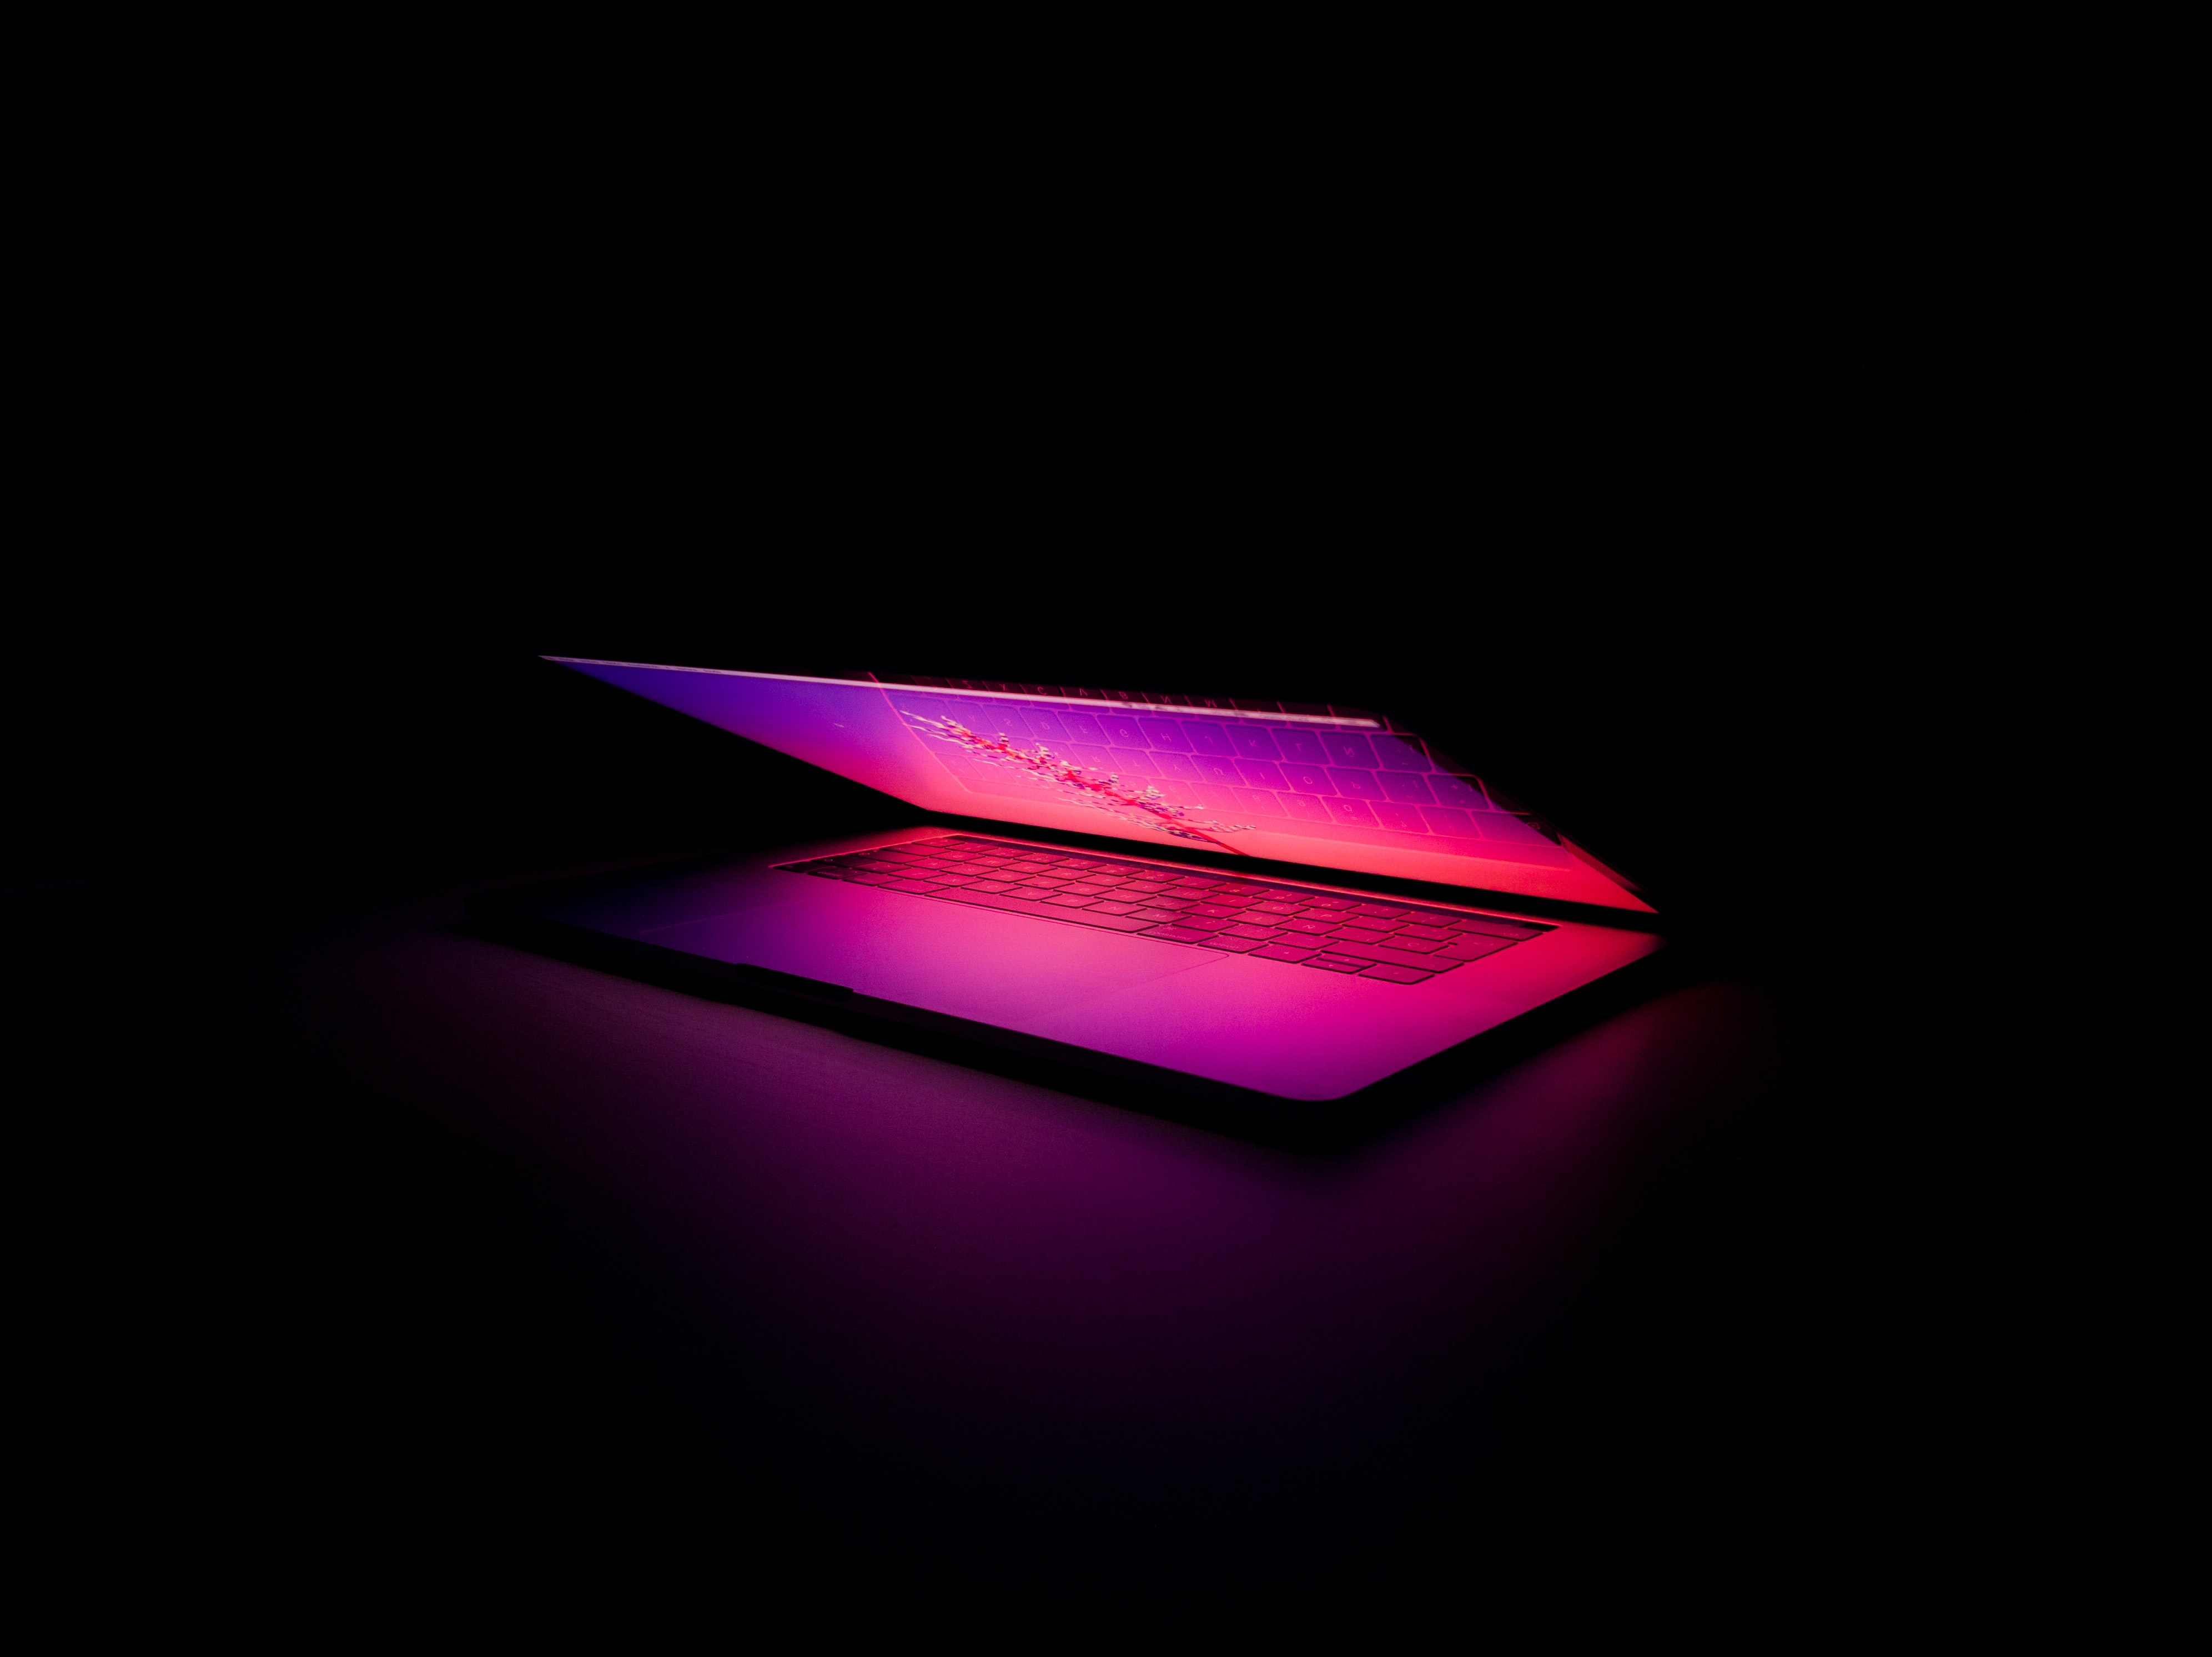 121730 download wallpaper Technology, Dark, Technologies, Glow, Keys, Notebook, Laptop screensavers and pictures for free